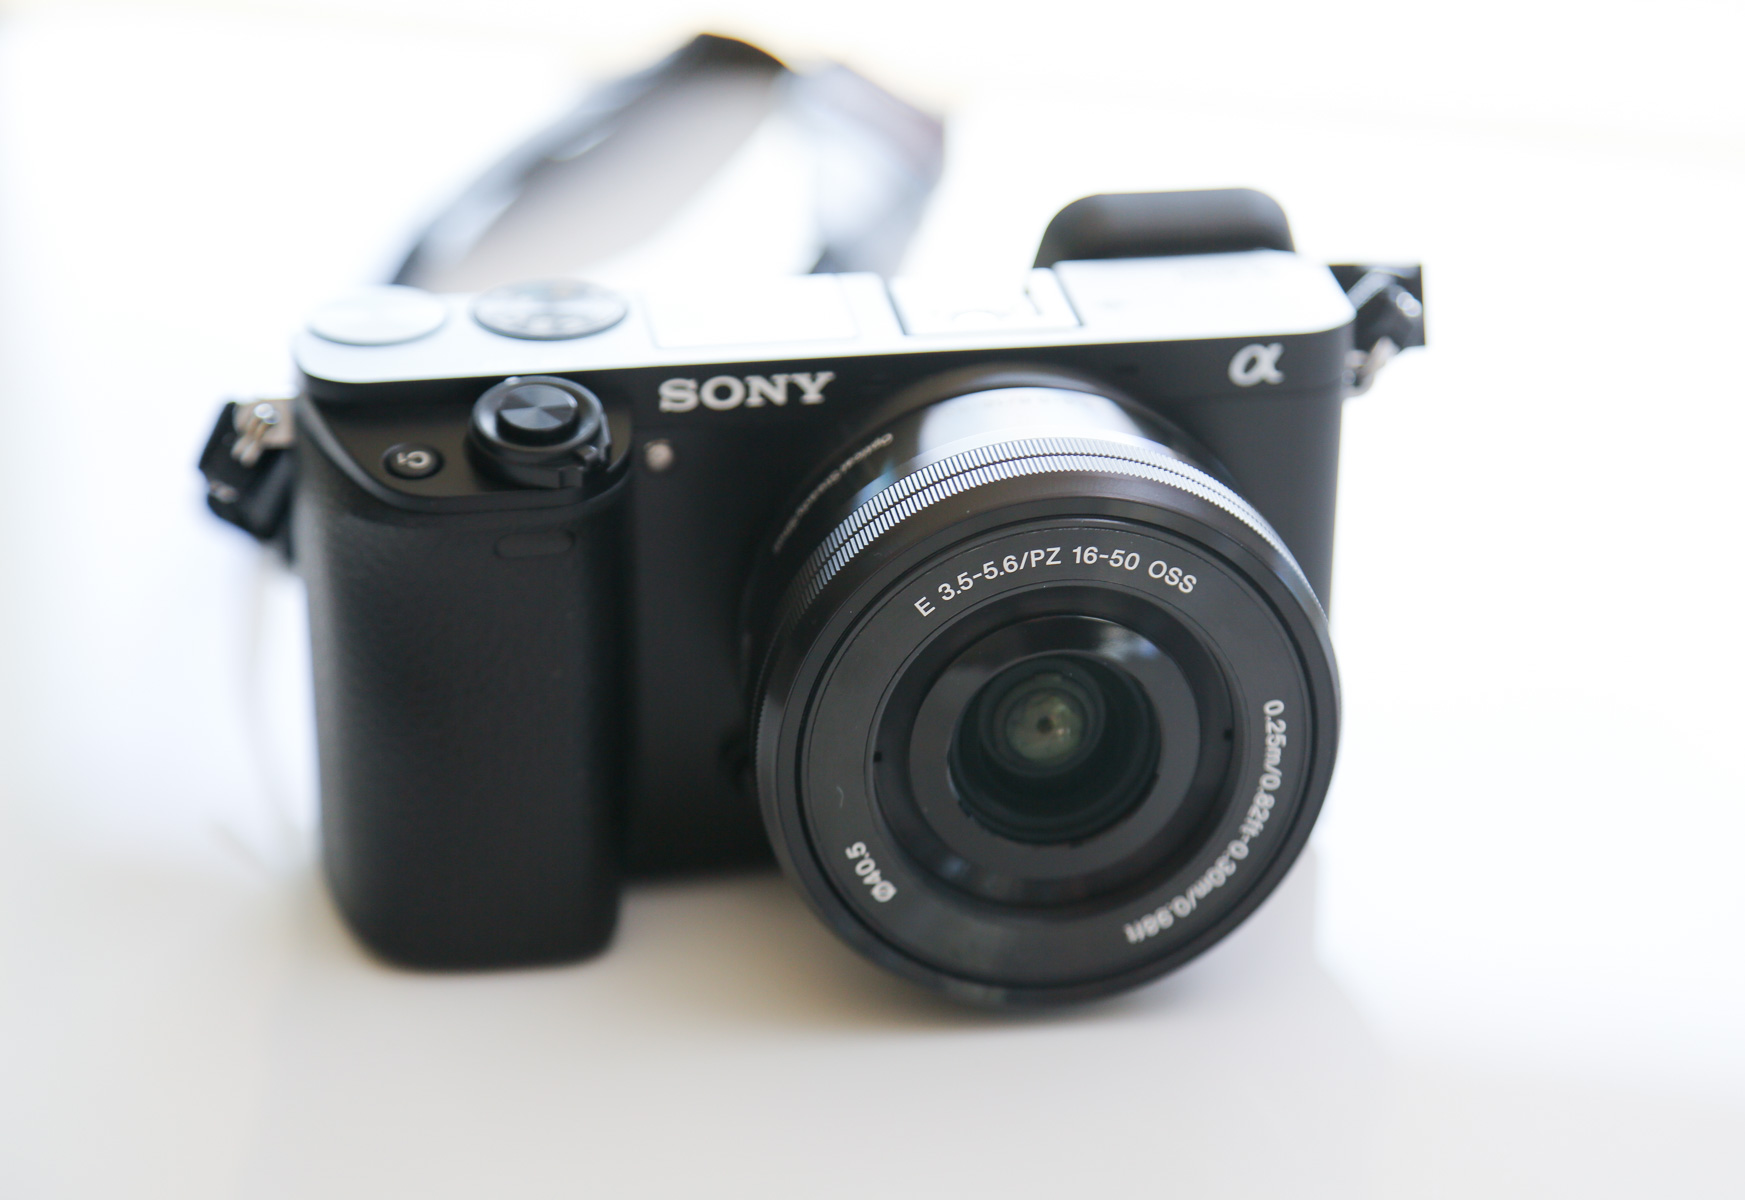 Sony Alpha a6000 with kit 16-50mm f/3.5 to f/5.6 lens - Click to enlarge